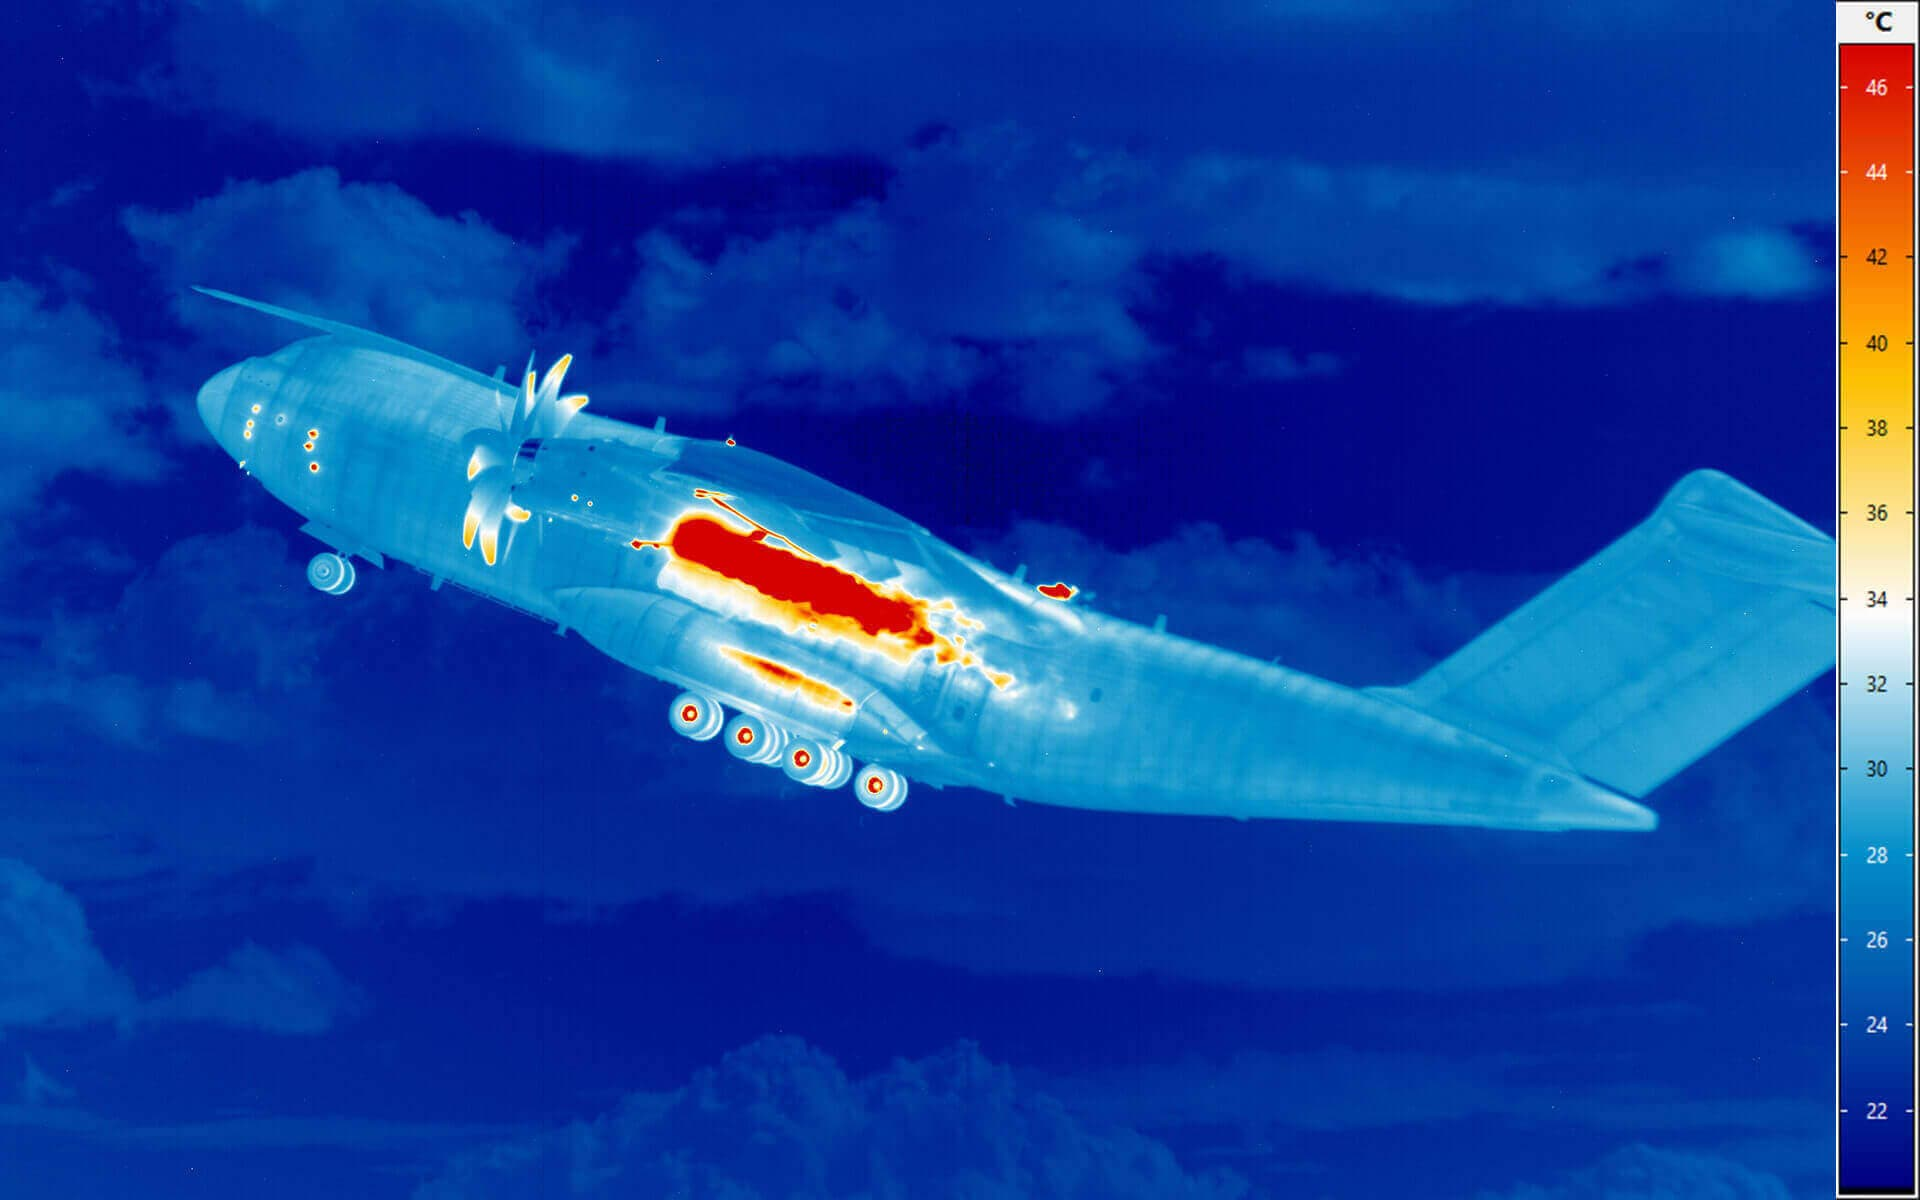 High Speed Thermography: Start of an airbus